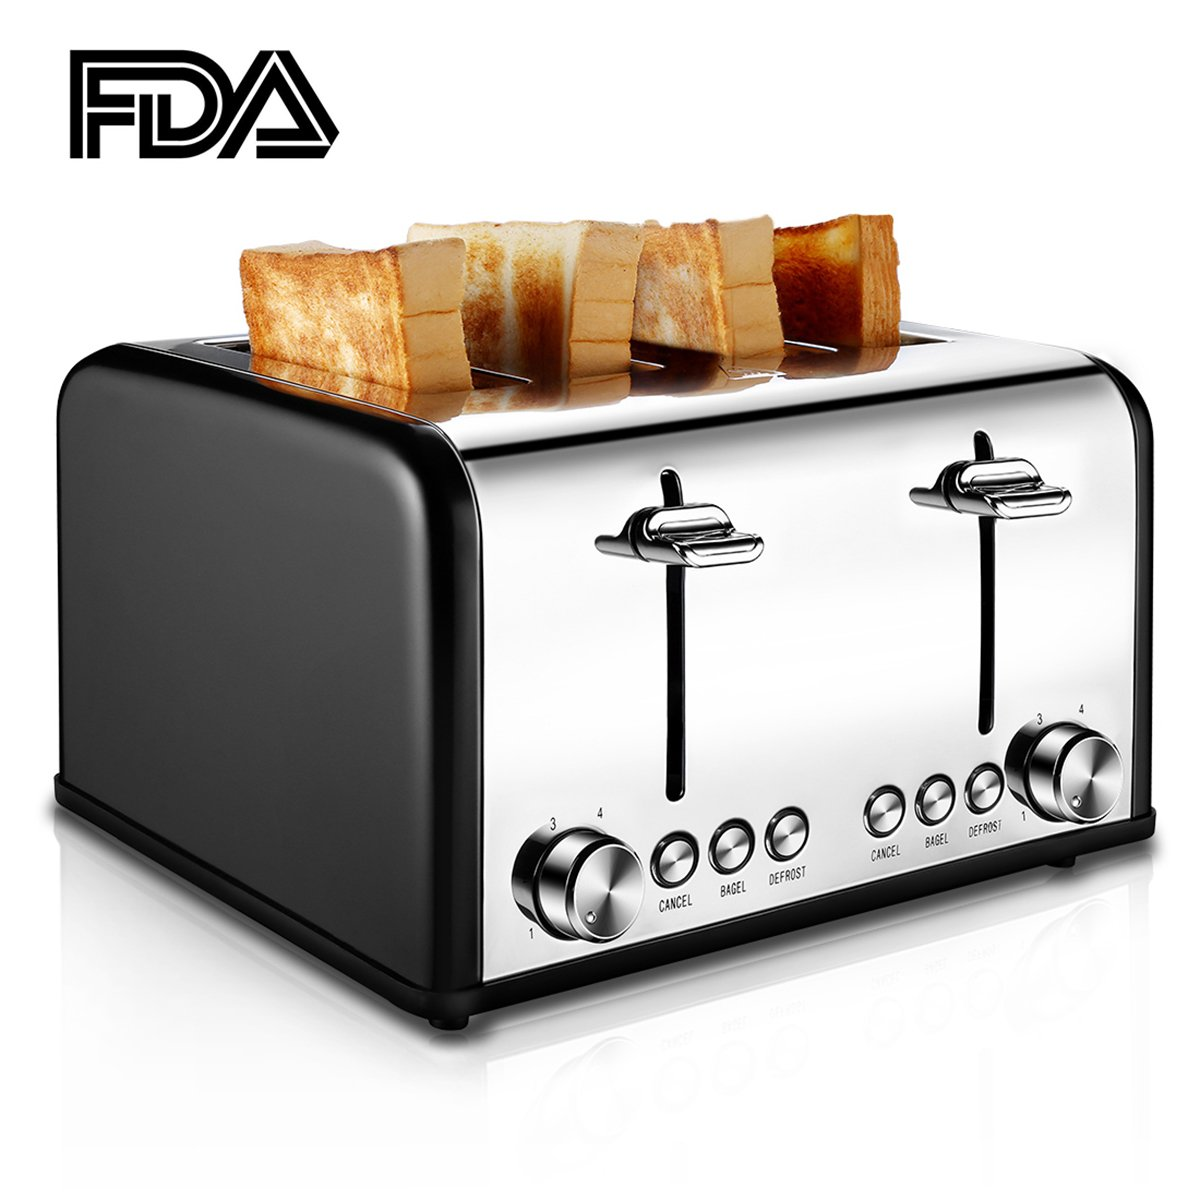 Toaster 4 Slice, CUSIBOX Stainless Steel Toaster with BAGEL/DEFROST/CANCEL Function, Extra Wide Slots Four Slice Bread Bagel Toaster, 1650W, Black